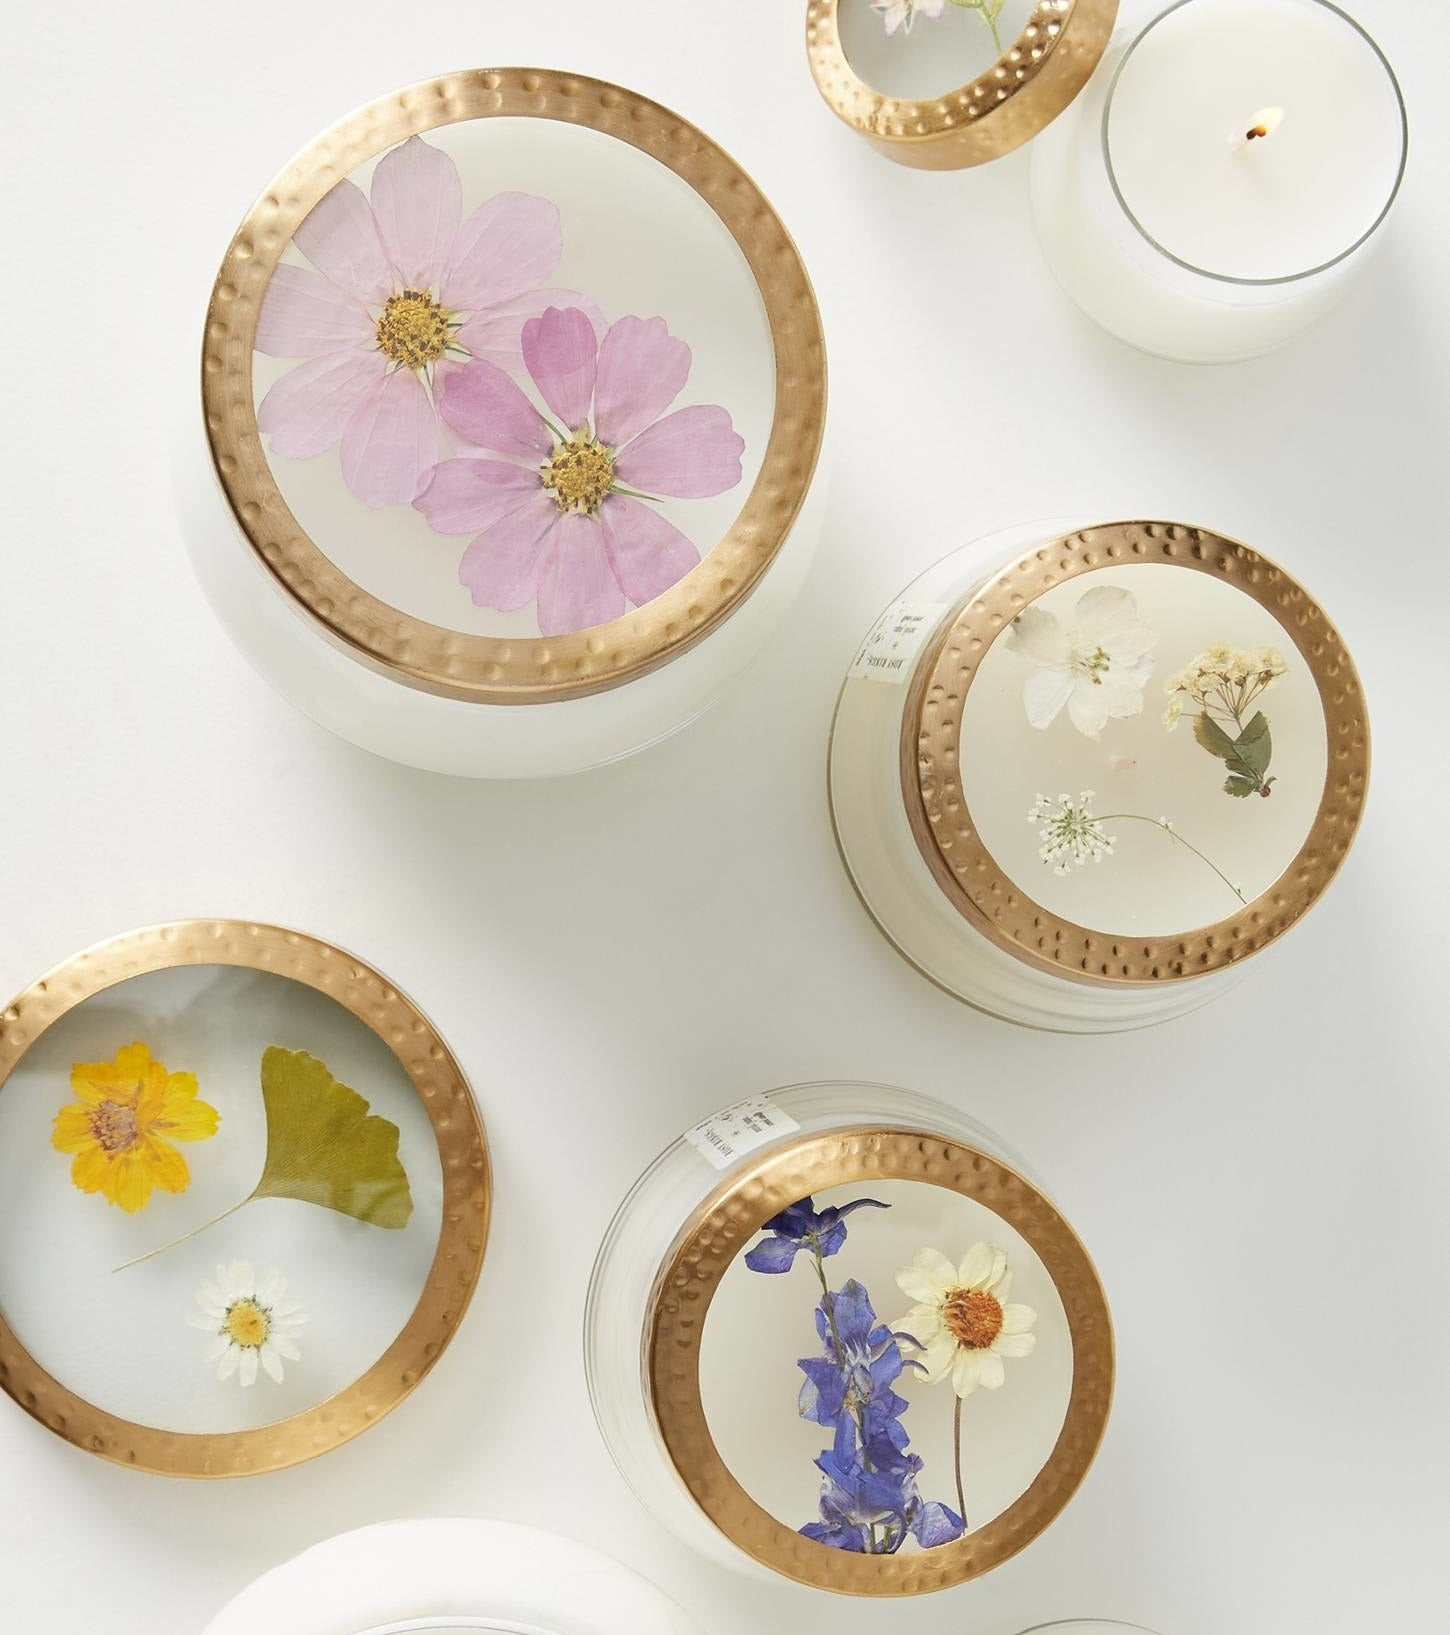 Candles of different sizes with various pressed flowers displayed on the lid